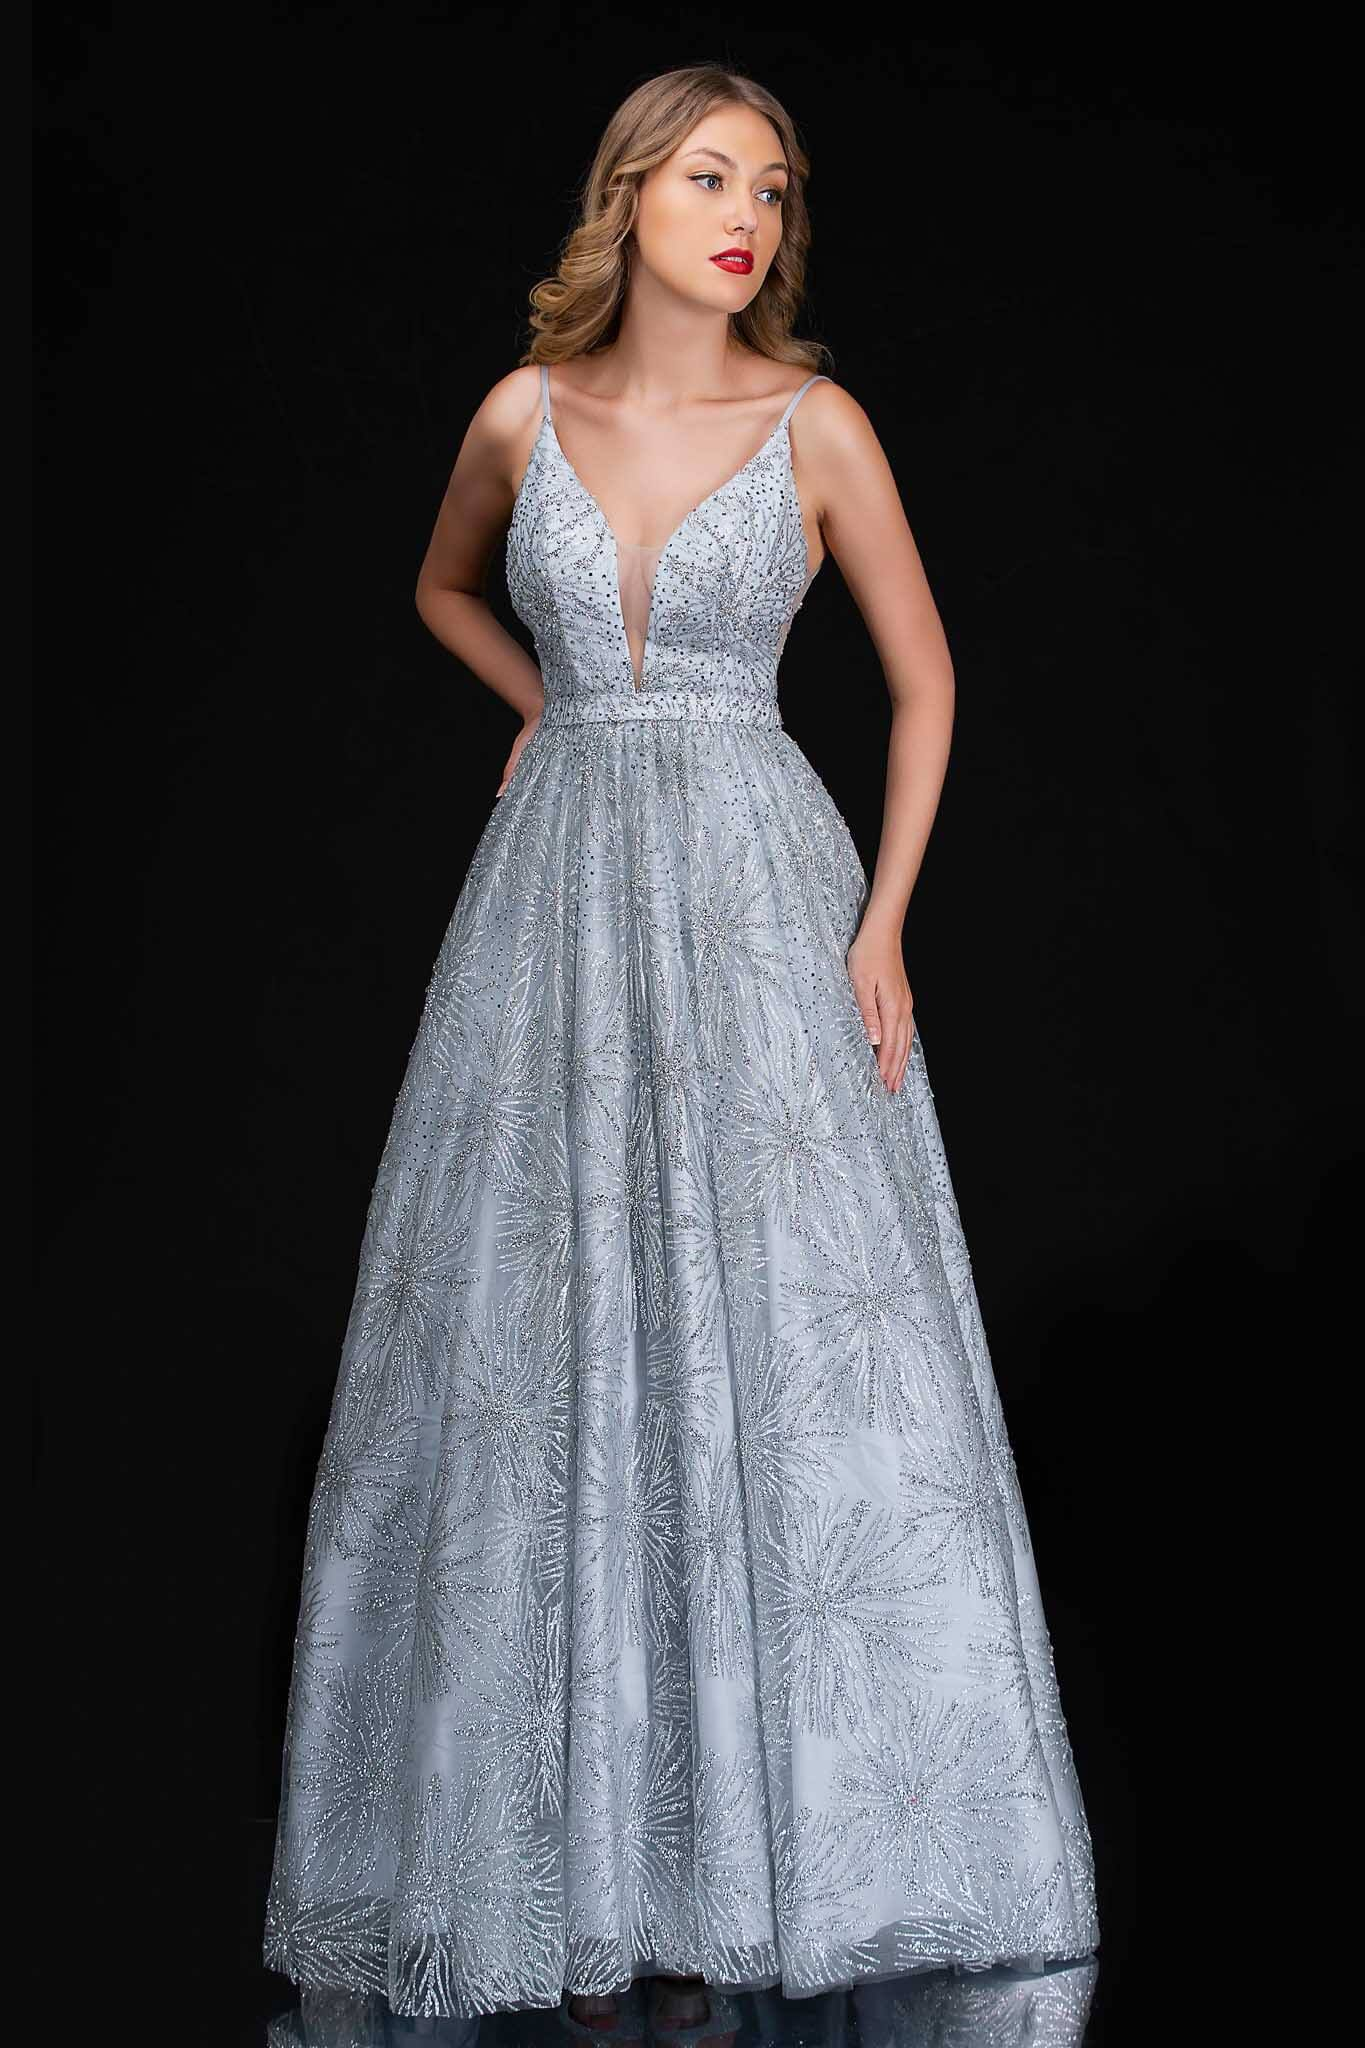 Style 6541 Nina Canacci Silver Size 10 Prom Plunge Tall Height A-line Dress on Queenly